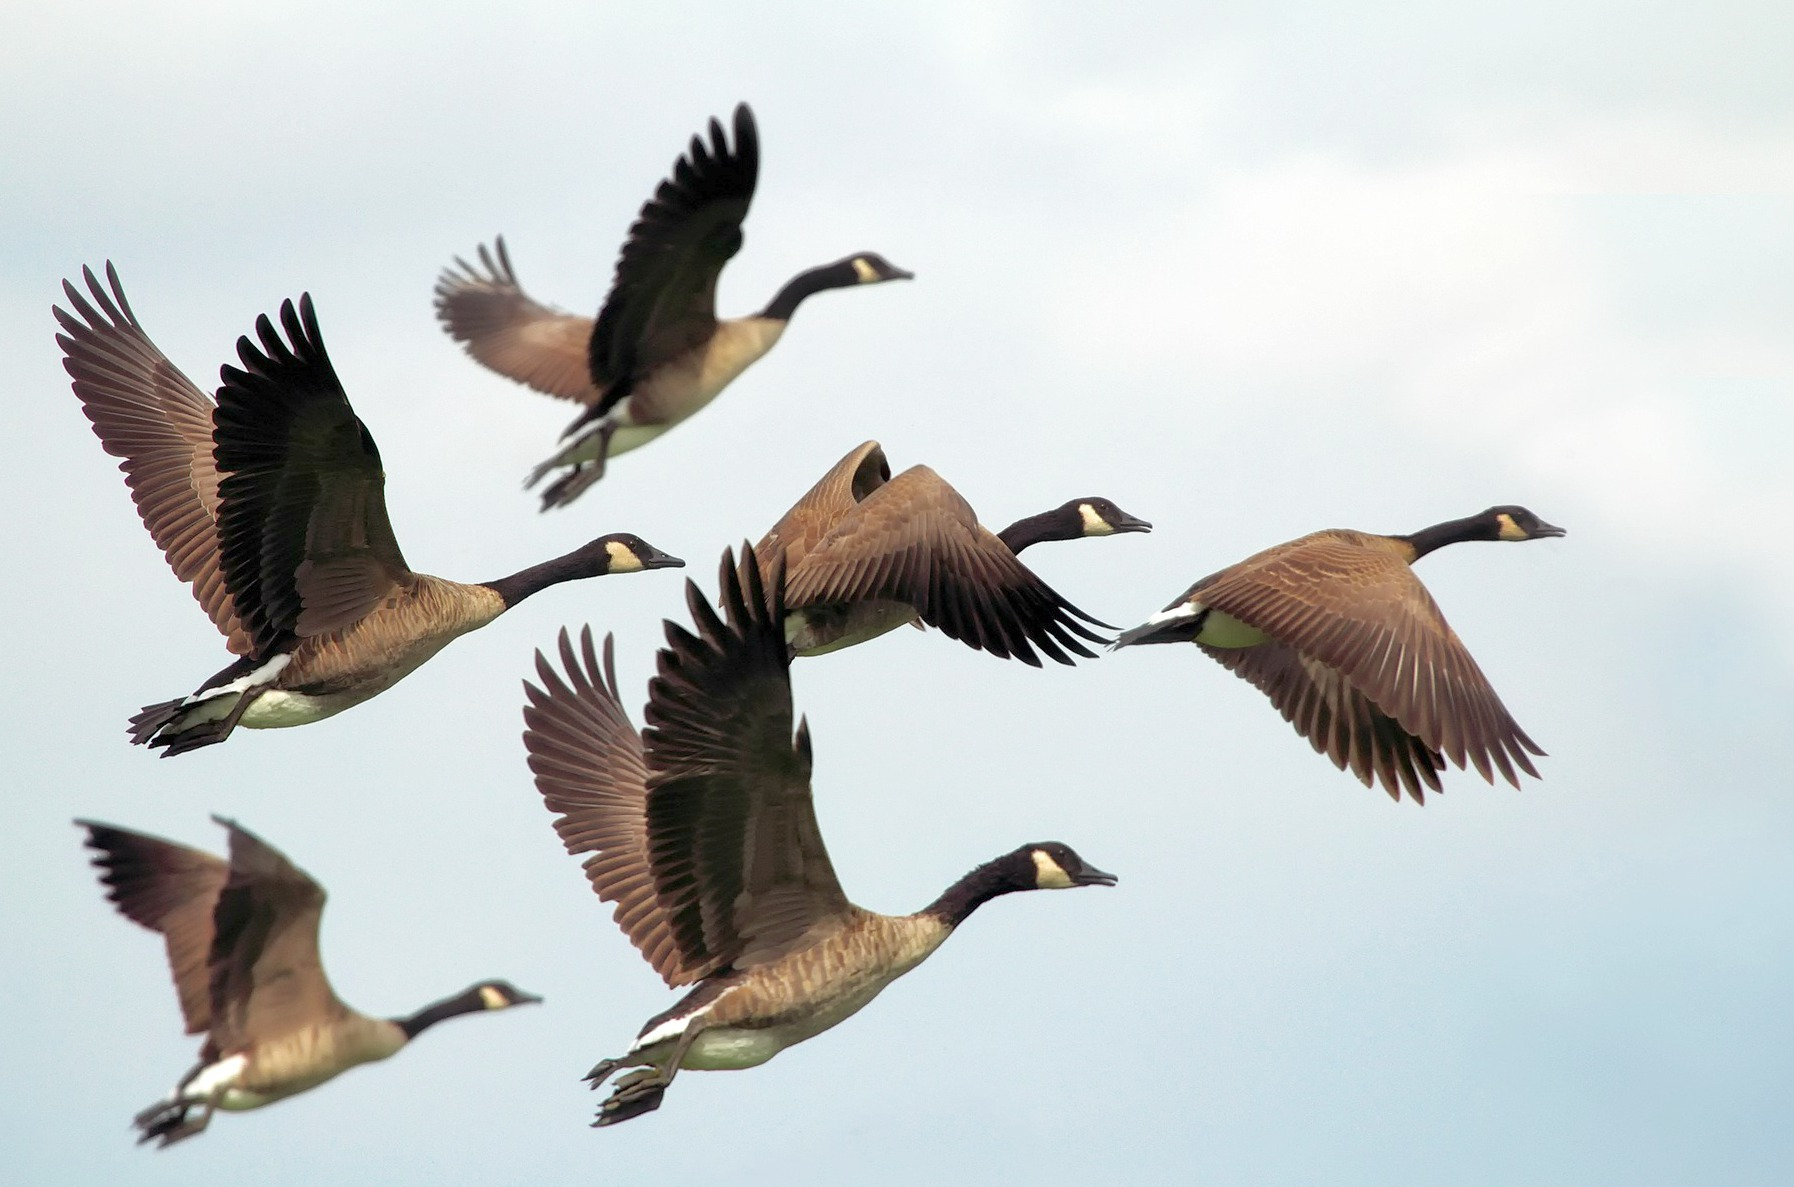 Flying geese held by the hand of God.